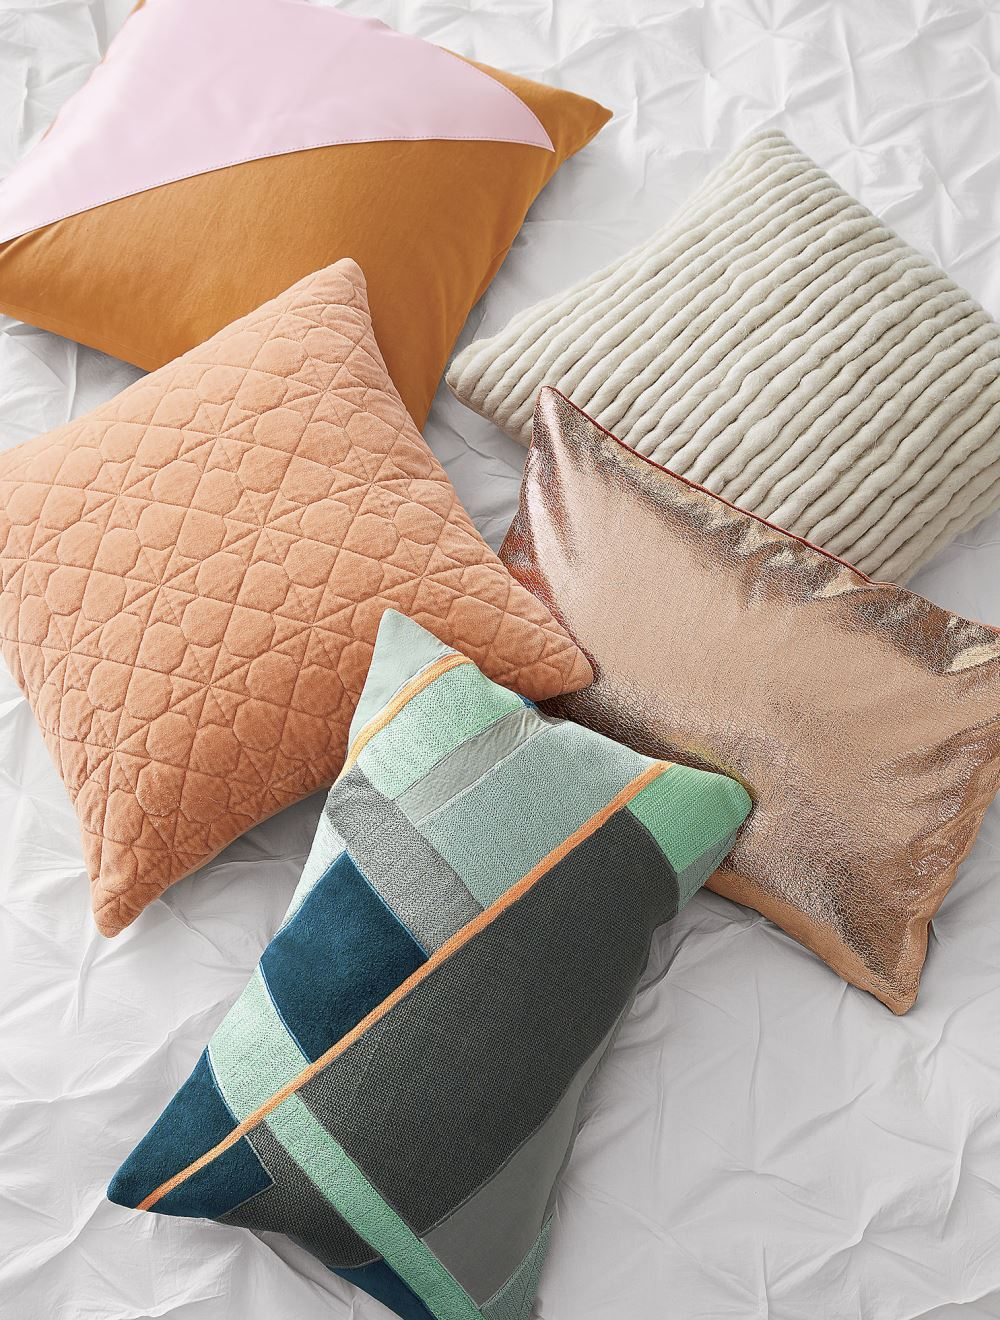 New pillows in fall tones